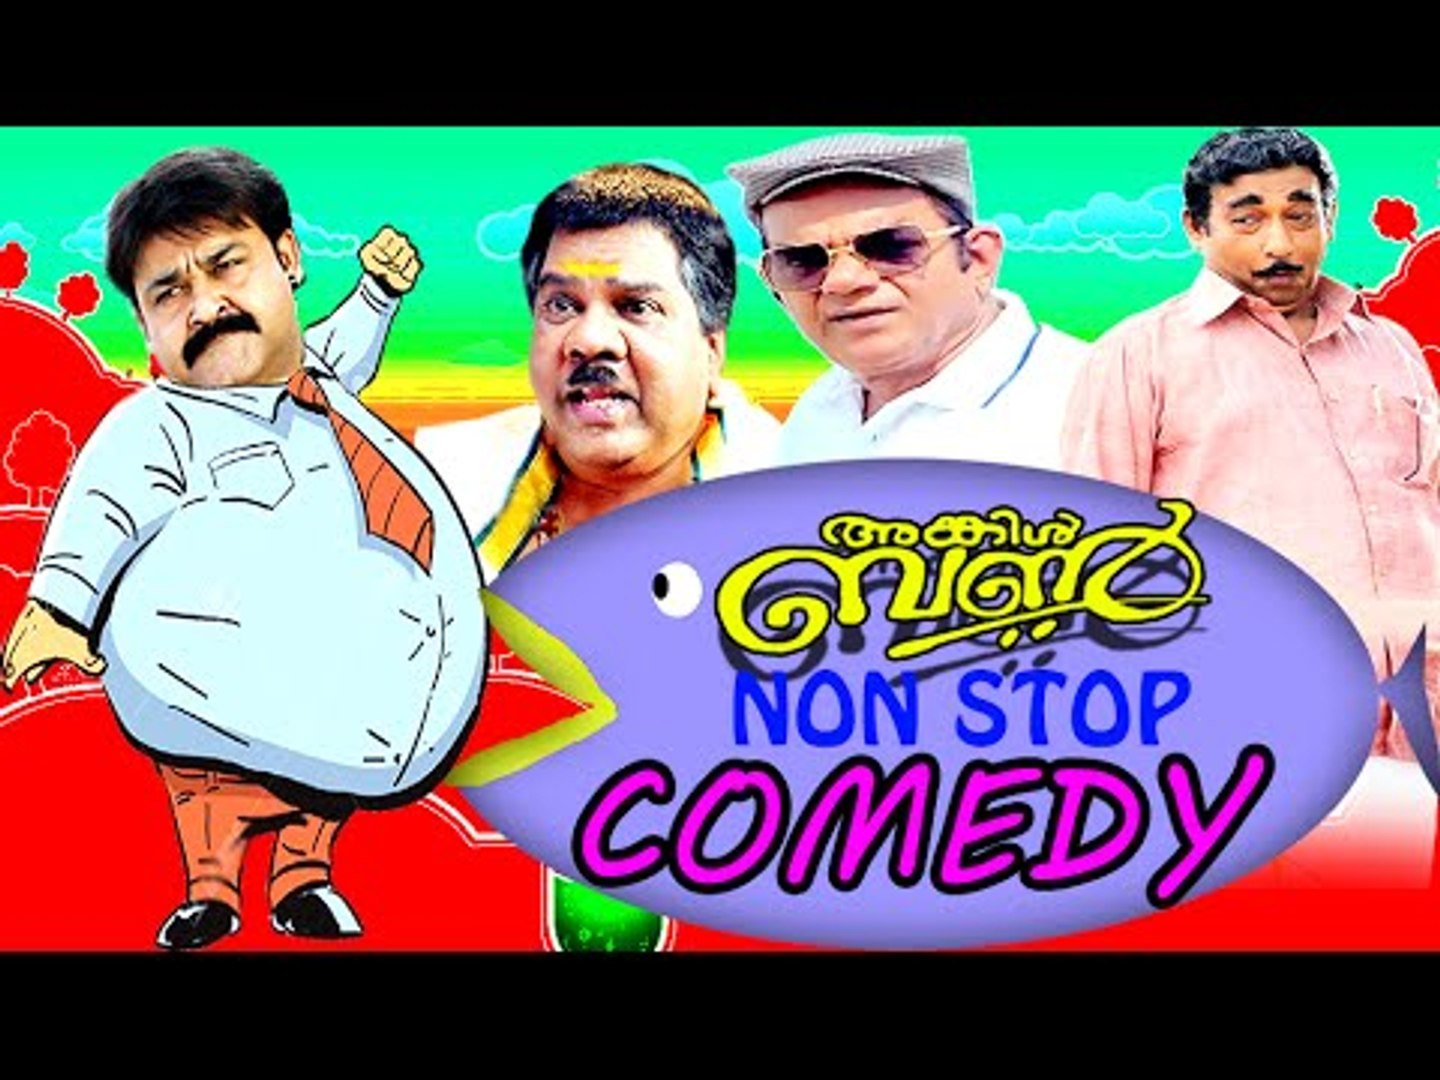 Malayalam Movie Non Stop Comedy Scenes | Uncle Bun | Malayalam Comedy Scenes Malayalam Comedy Movies